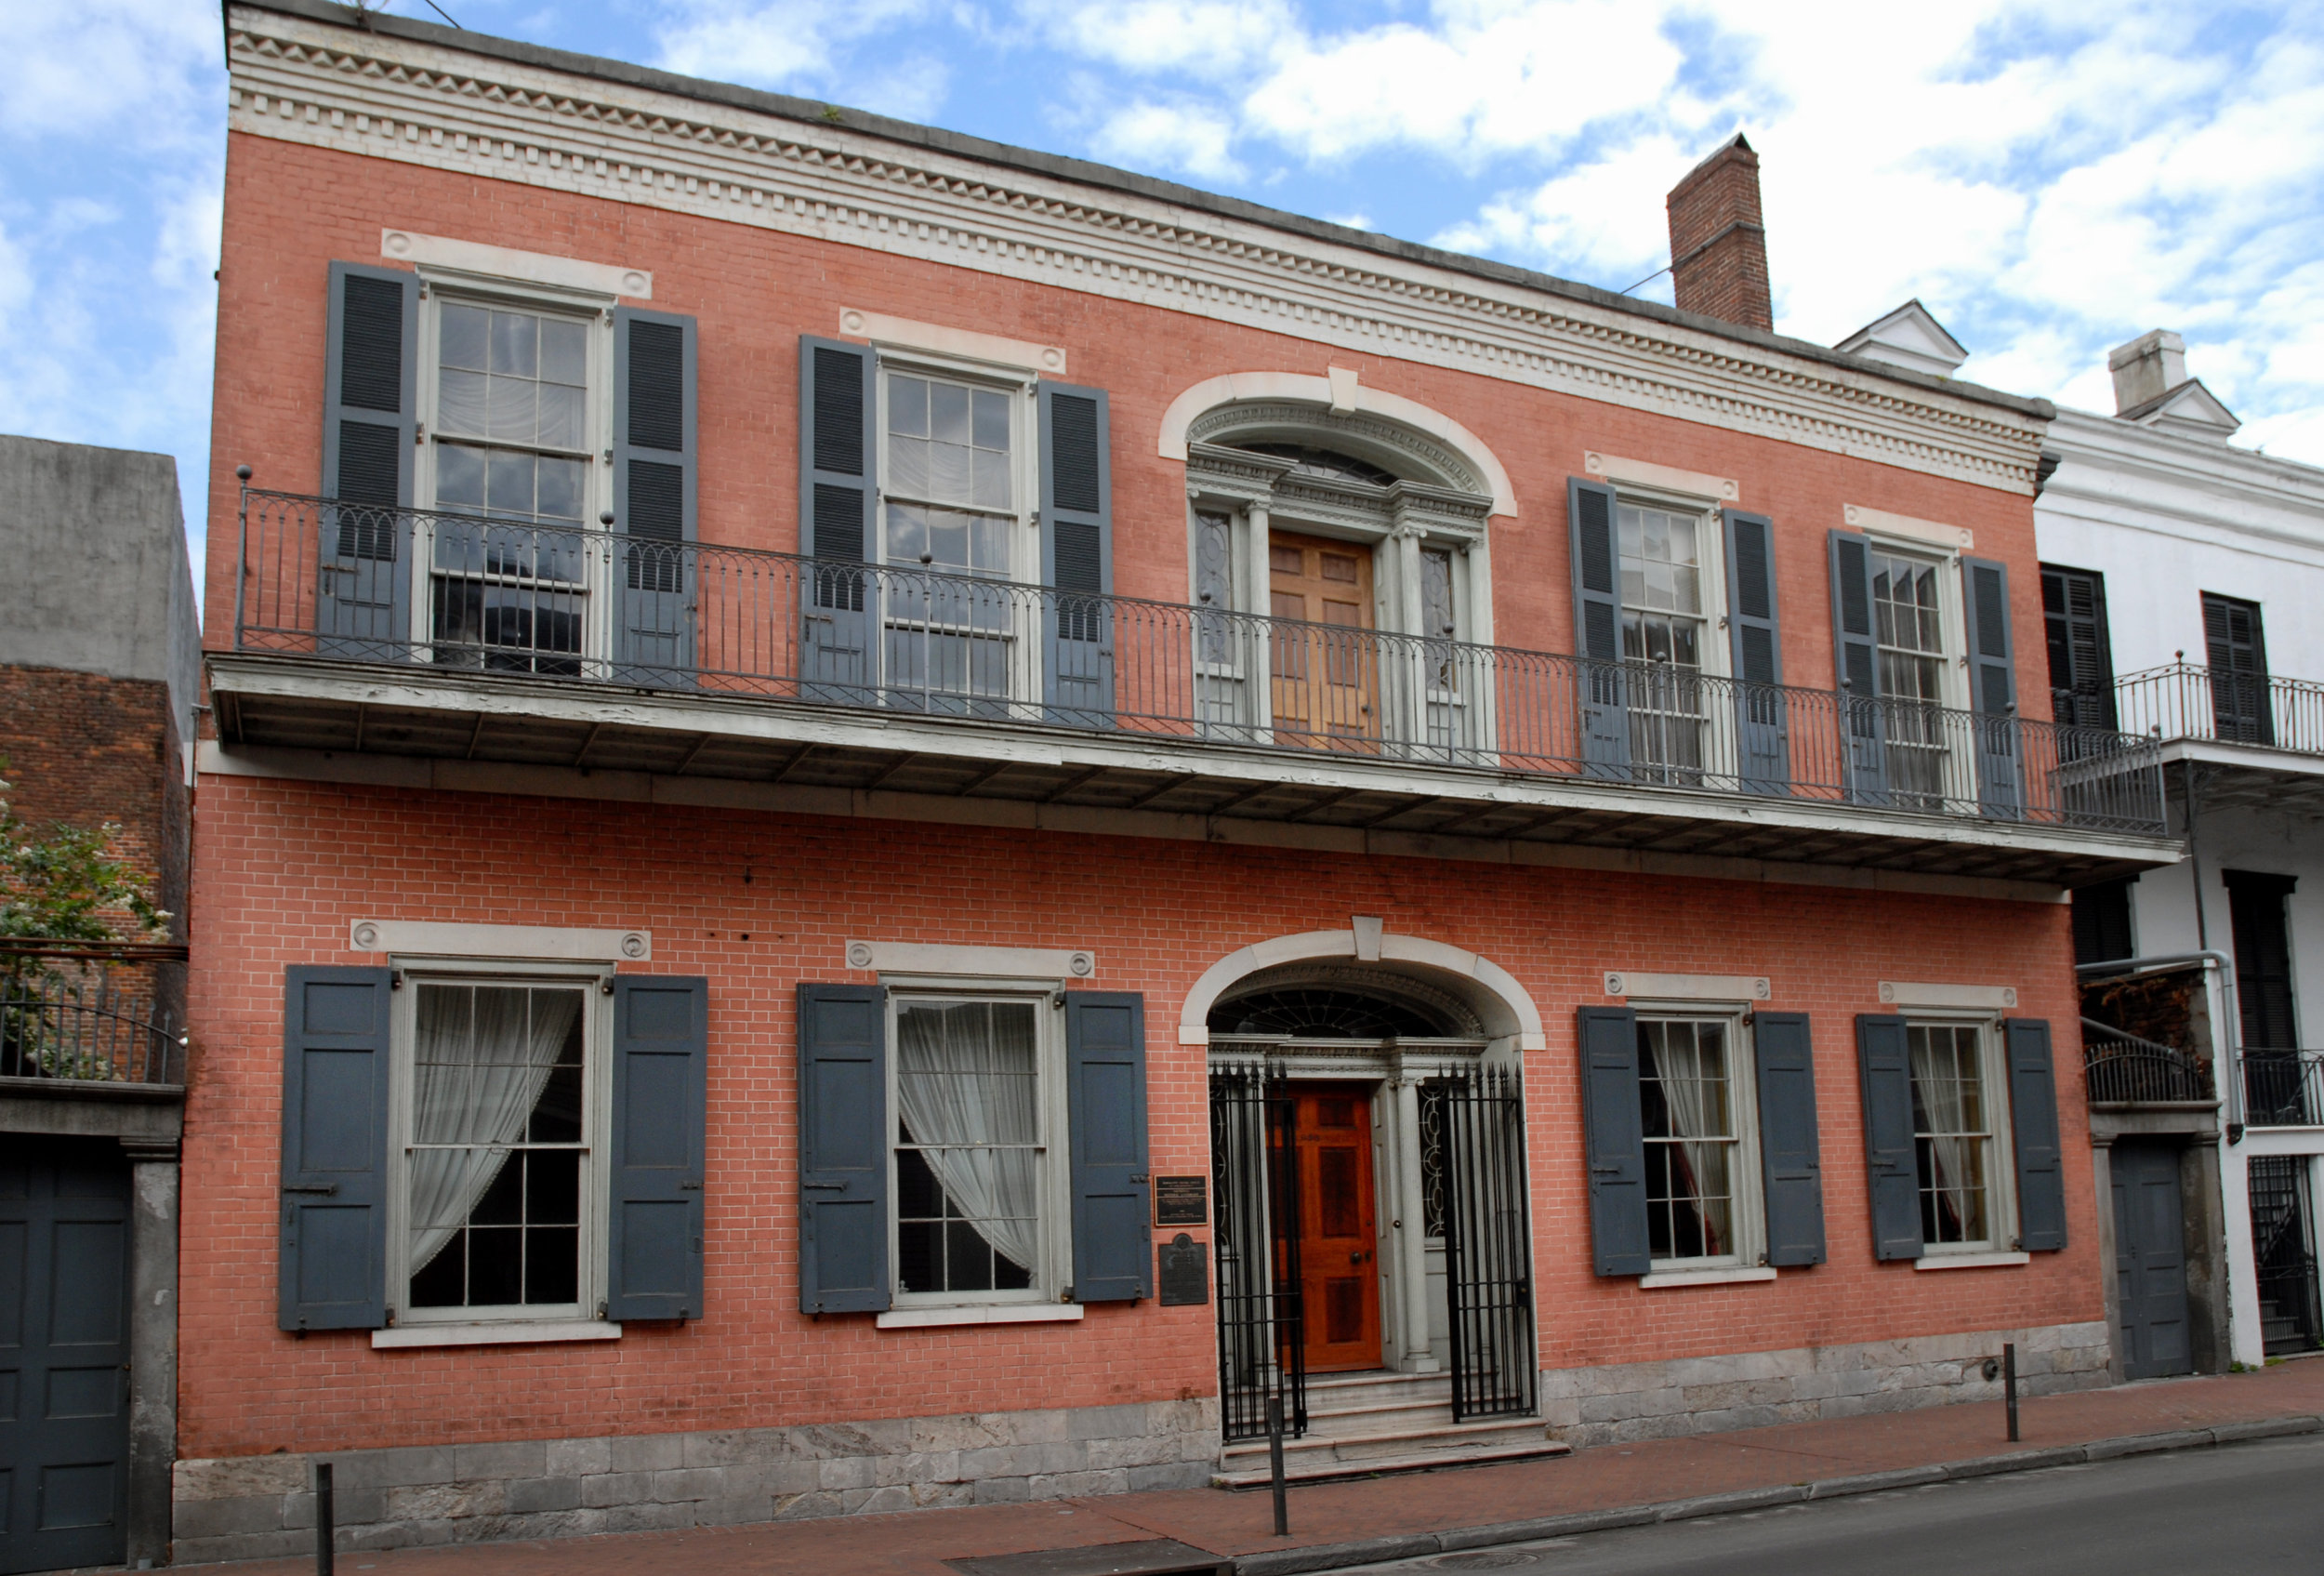 Hermann-Grima House - HoursThursday – Tuesday 10am – 4pmScheduled Tour TimesThursday - Tuesday10 am, 11 am, 12 pm, 1 pm, 2 pm, 3 pm (and by appointment)Closed on Wednesday Open by appointment for groups of 25 or moreExchange Shop HoursDaily 10 am – 4pm